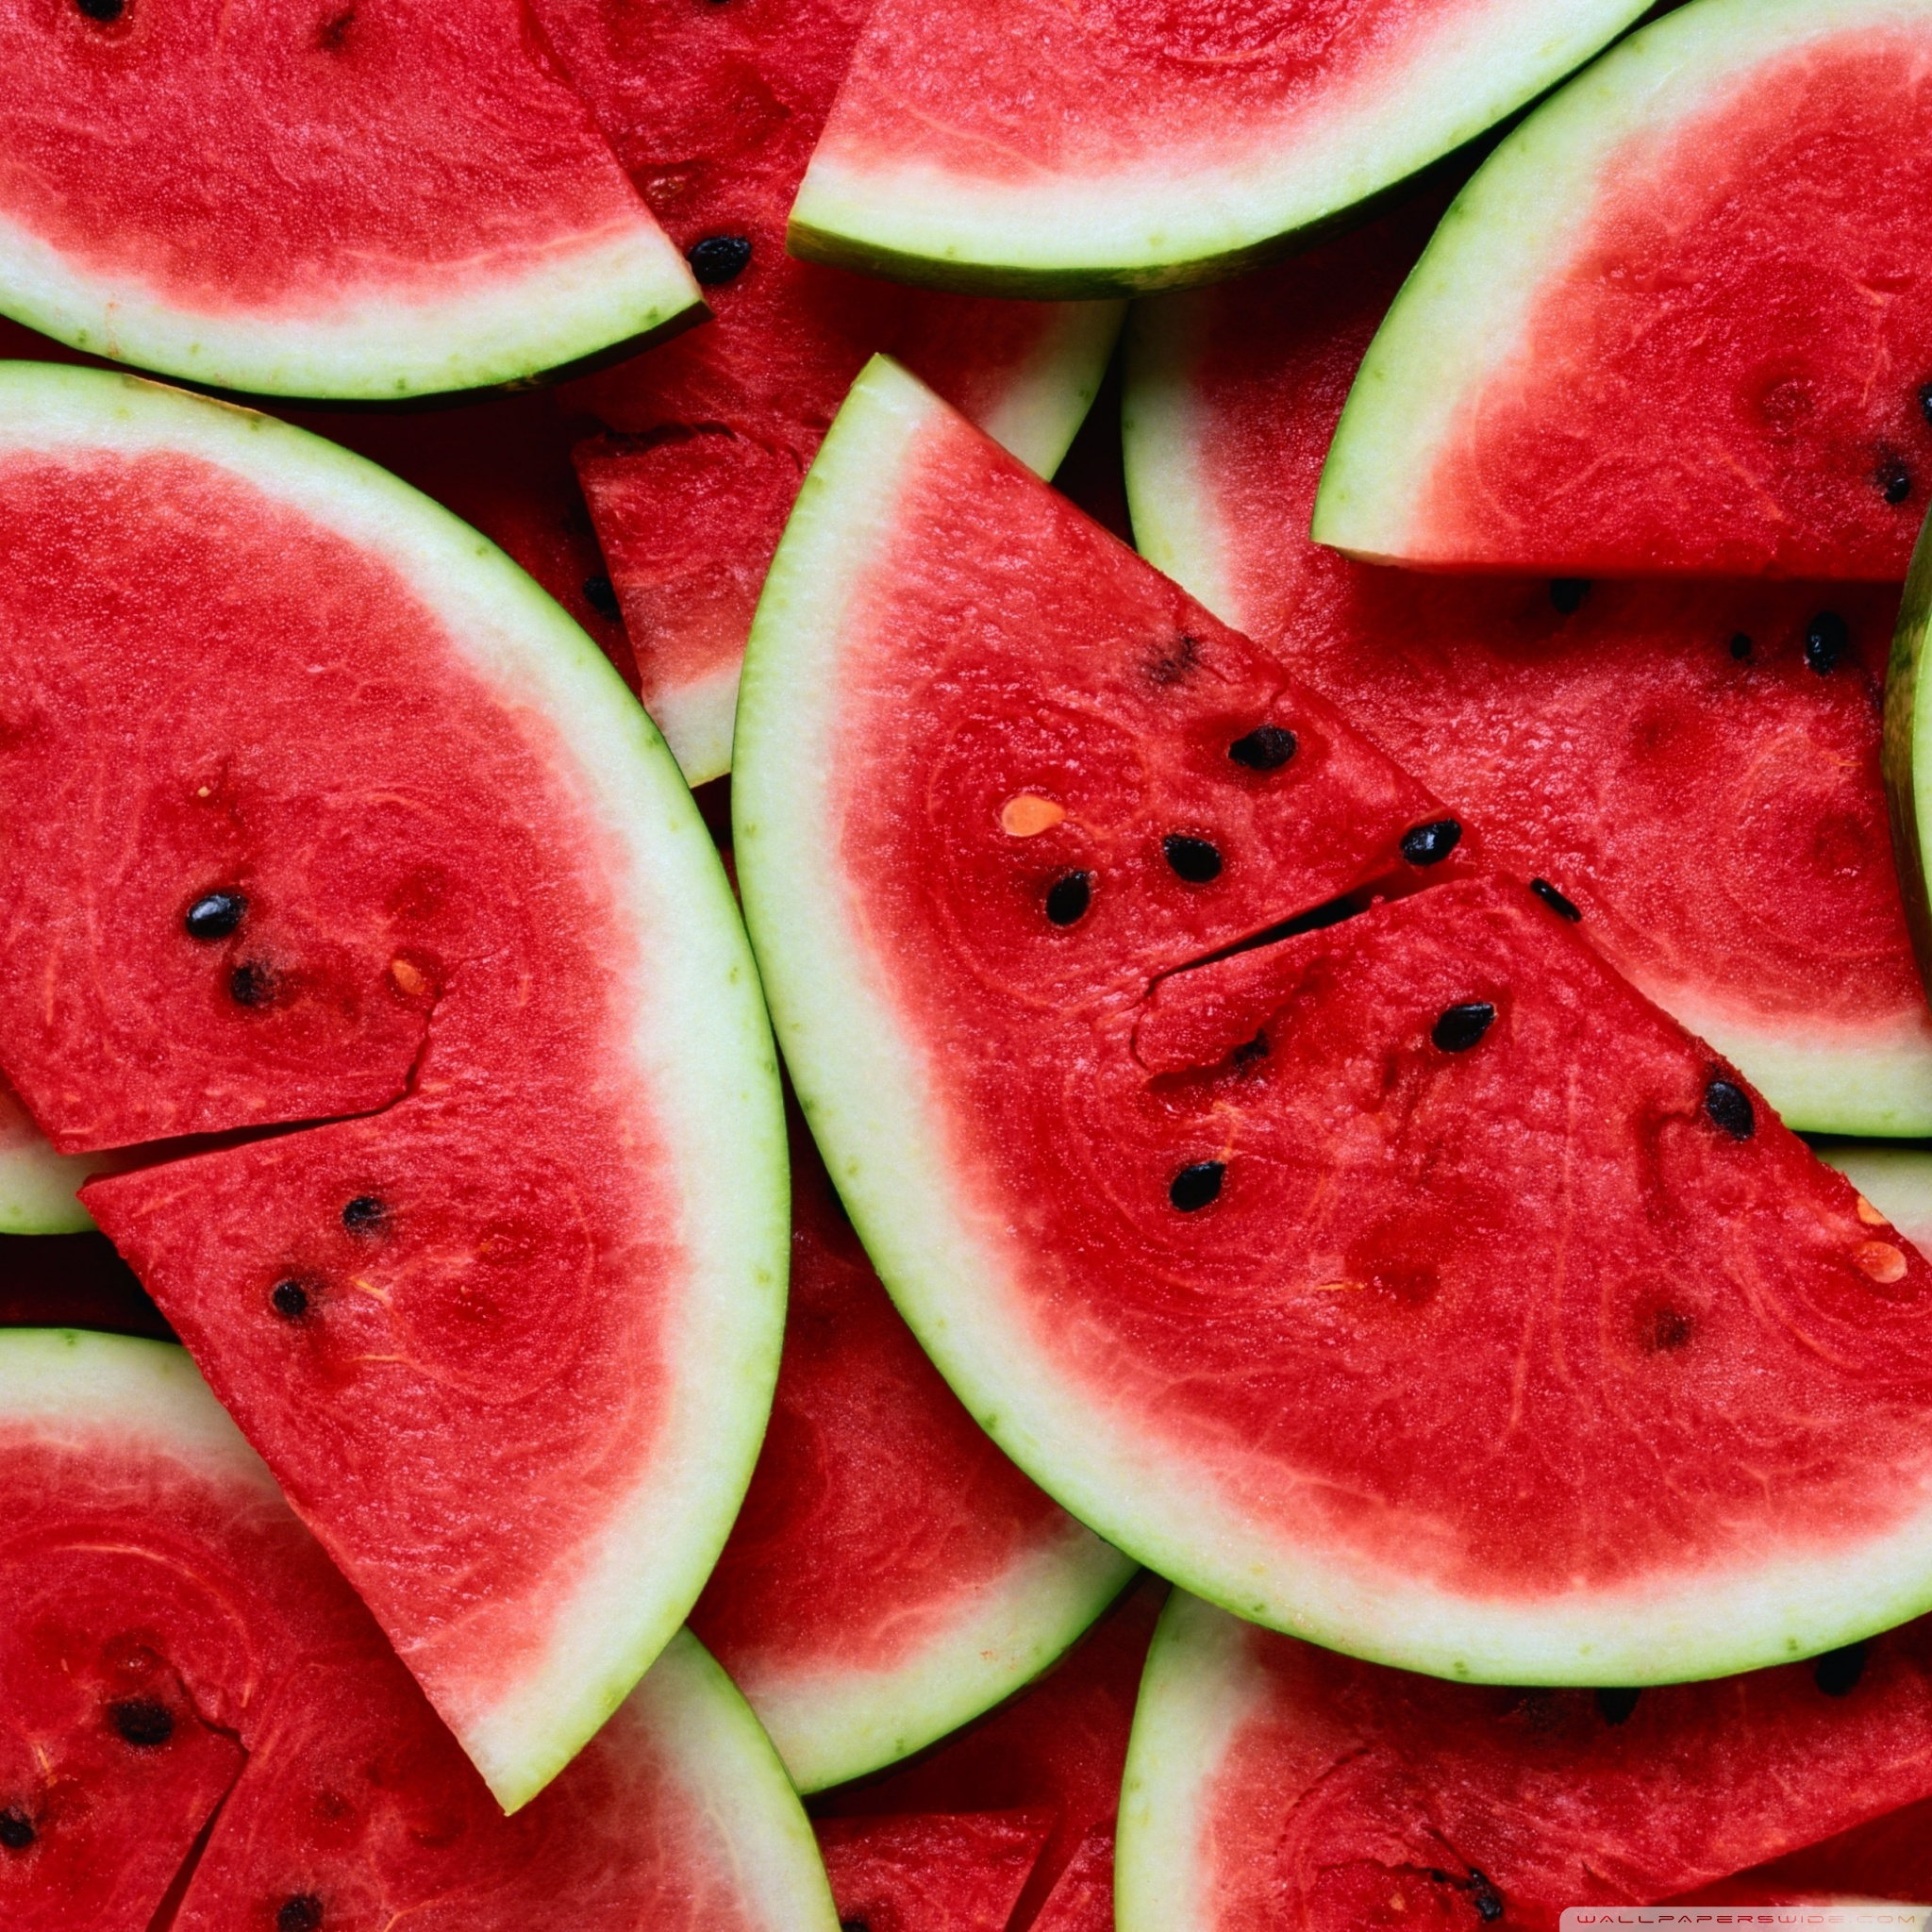 Watermelon Wallpaper - WallpaperSafari